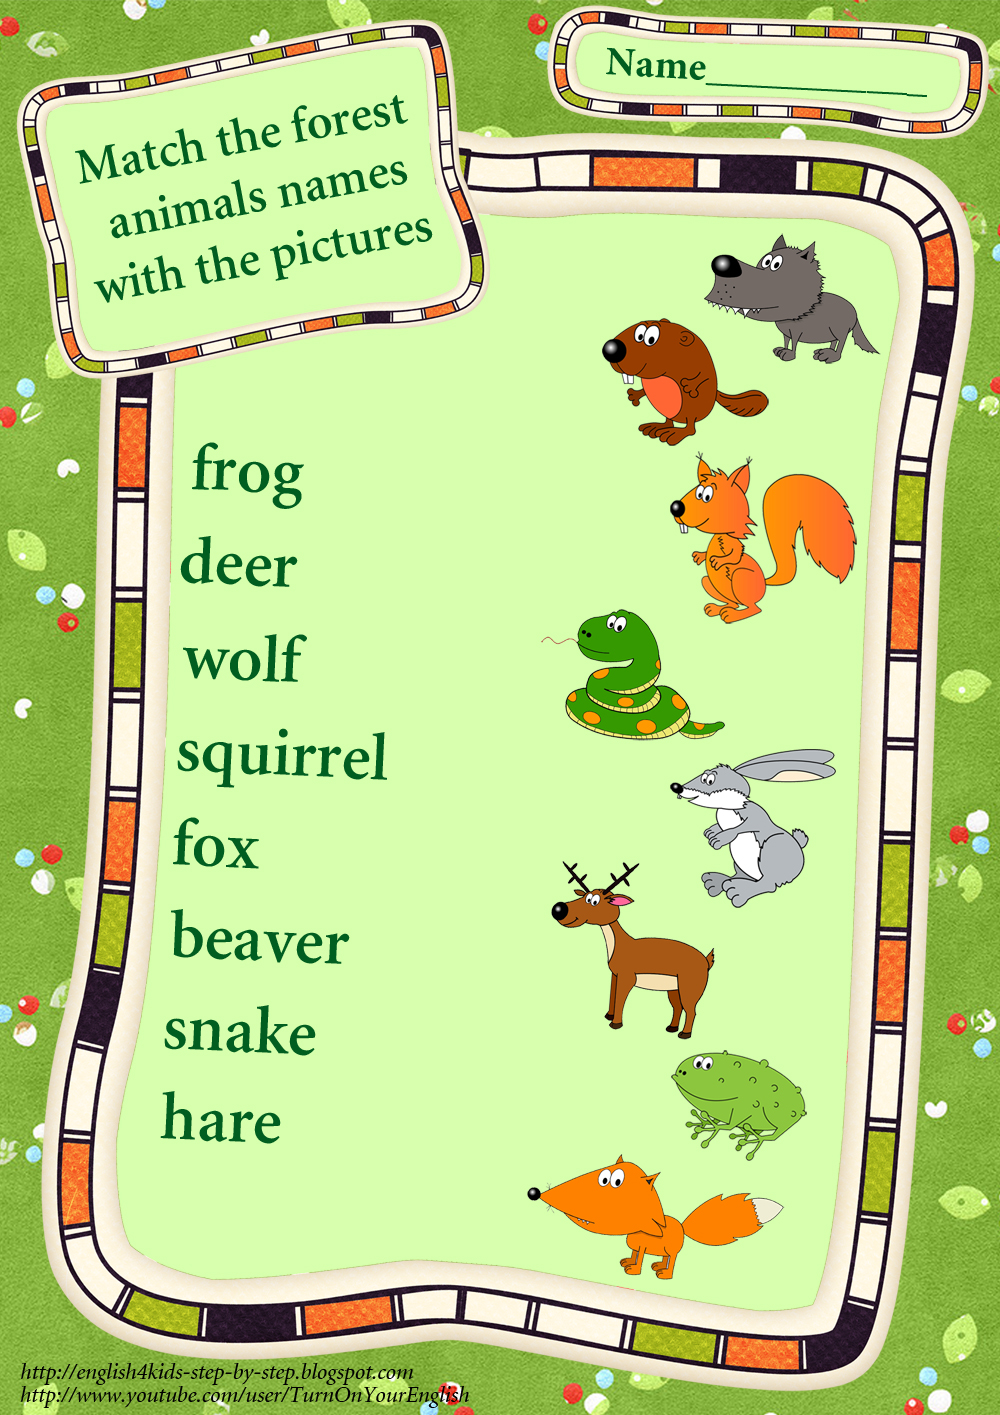 Animal Sound Matching Animals Worksheets For Kids Printable Worksheet besides Forest Animals Match Words And Pictures Worksheet together with Forest Animals Home Plural Worksheet in addition Forest Animals Making Negative Sentences Worksheet together with Lesson For Kids Worksheet Animals Worksheets Nocturnal Quiz X. on wild animals worksheet making worksheets for kids forest negative sentences